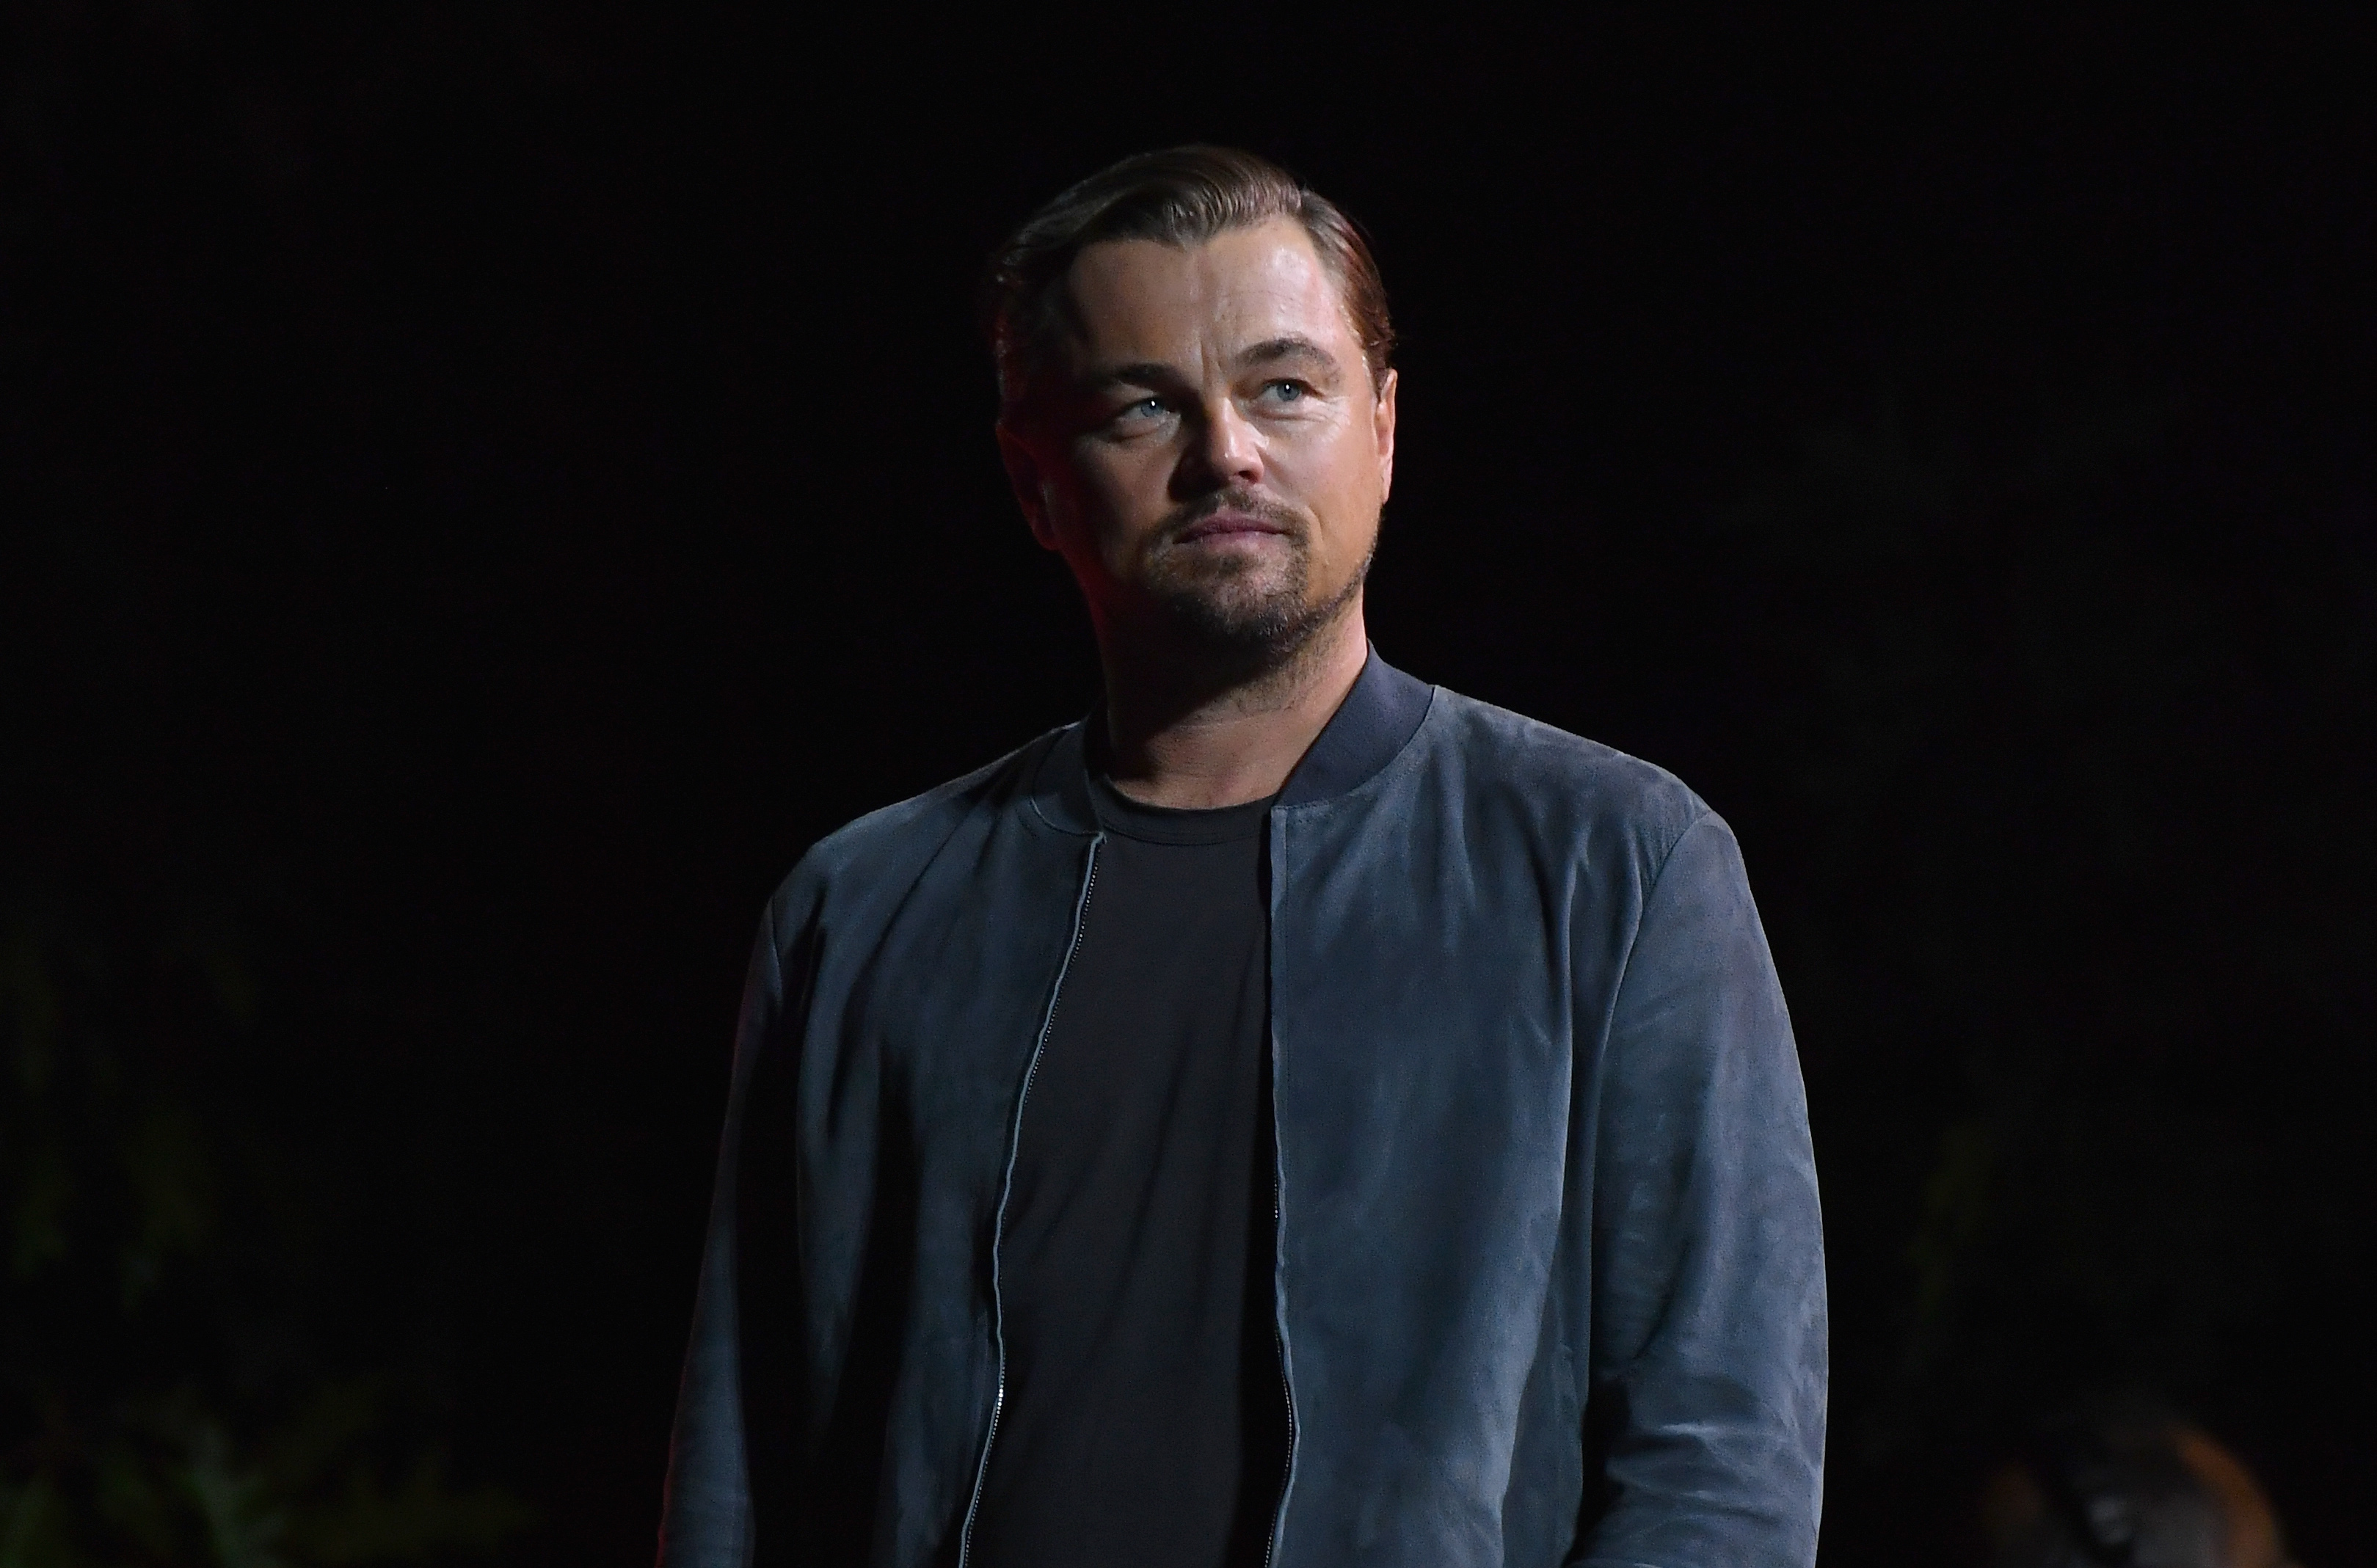 US actor Leonardo DiCaprio speaks onstage at the 2019 Global Citizen Festival: Power The Movement in Central Park in New York on September 28, 2019. (Photo by Angela Weiss / AFP)        (Photo credit should read ANGELA WEISS/AFP/Getty Images)